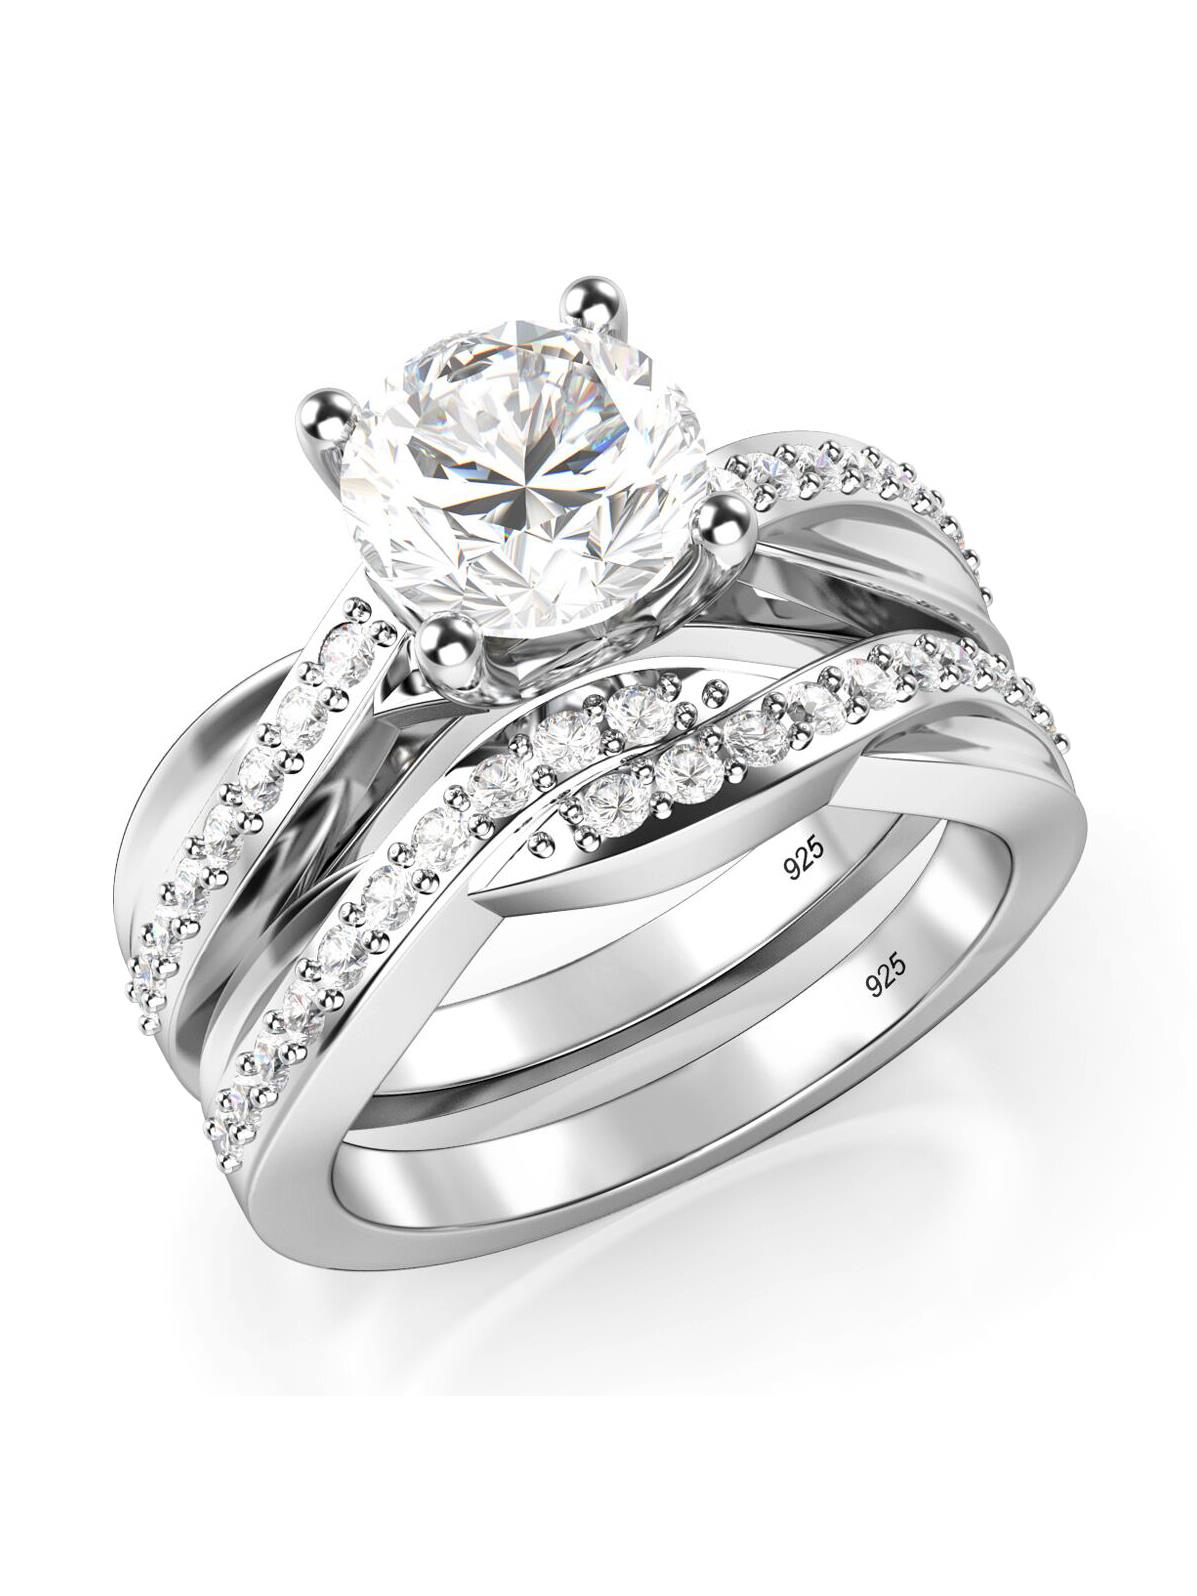 Sz 7 Sterling Silver 925 Round Brilliant Cut Cubic Zirconia CZ Engagement Ring Set